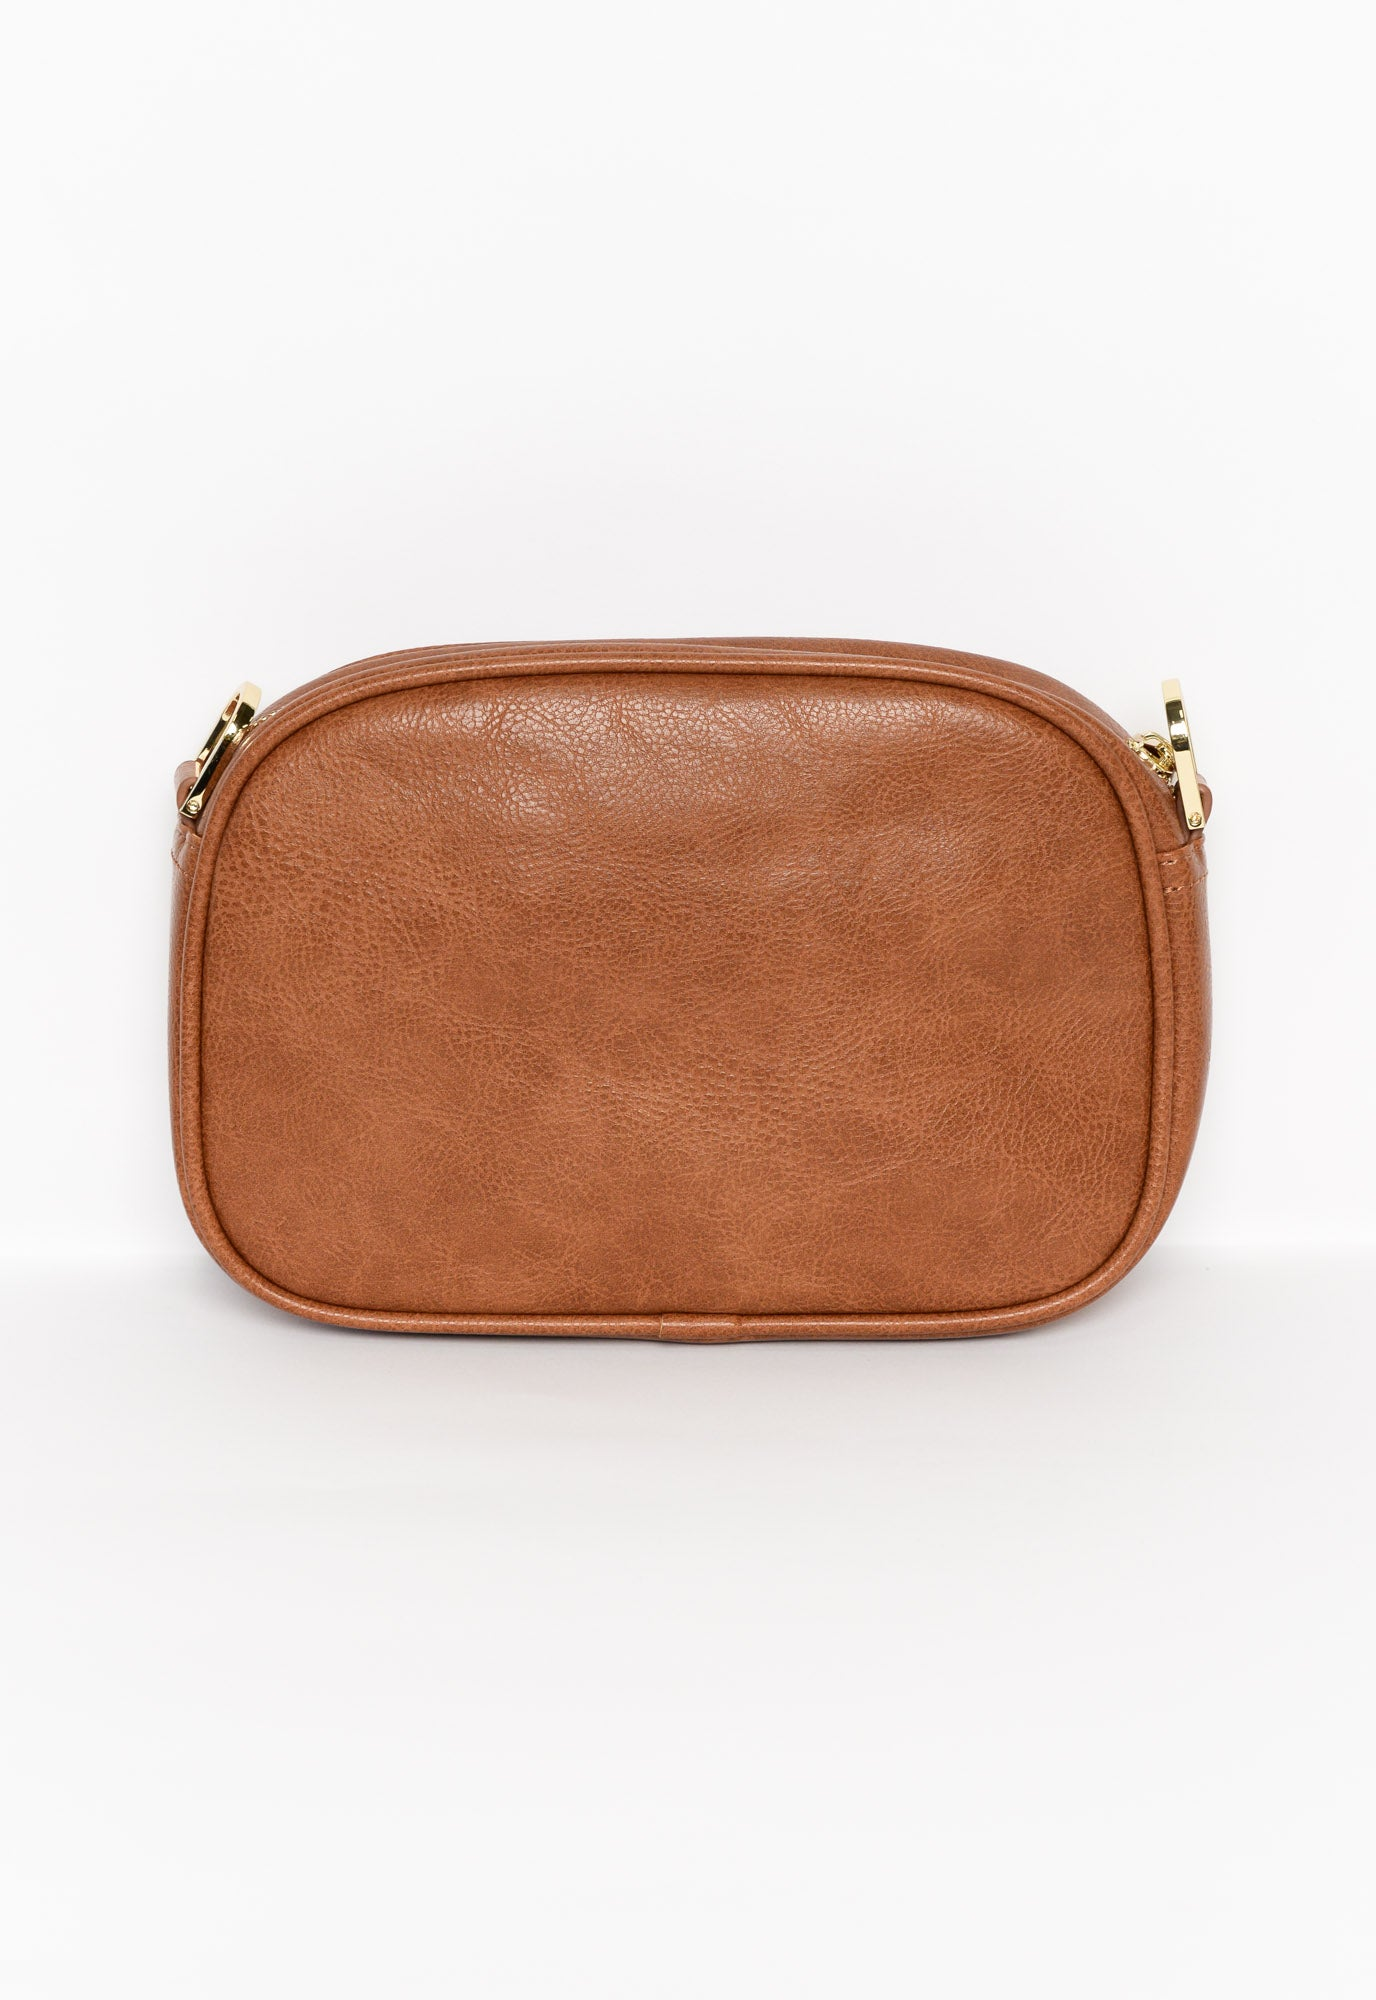 New York Tan Camera Bag